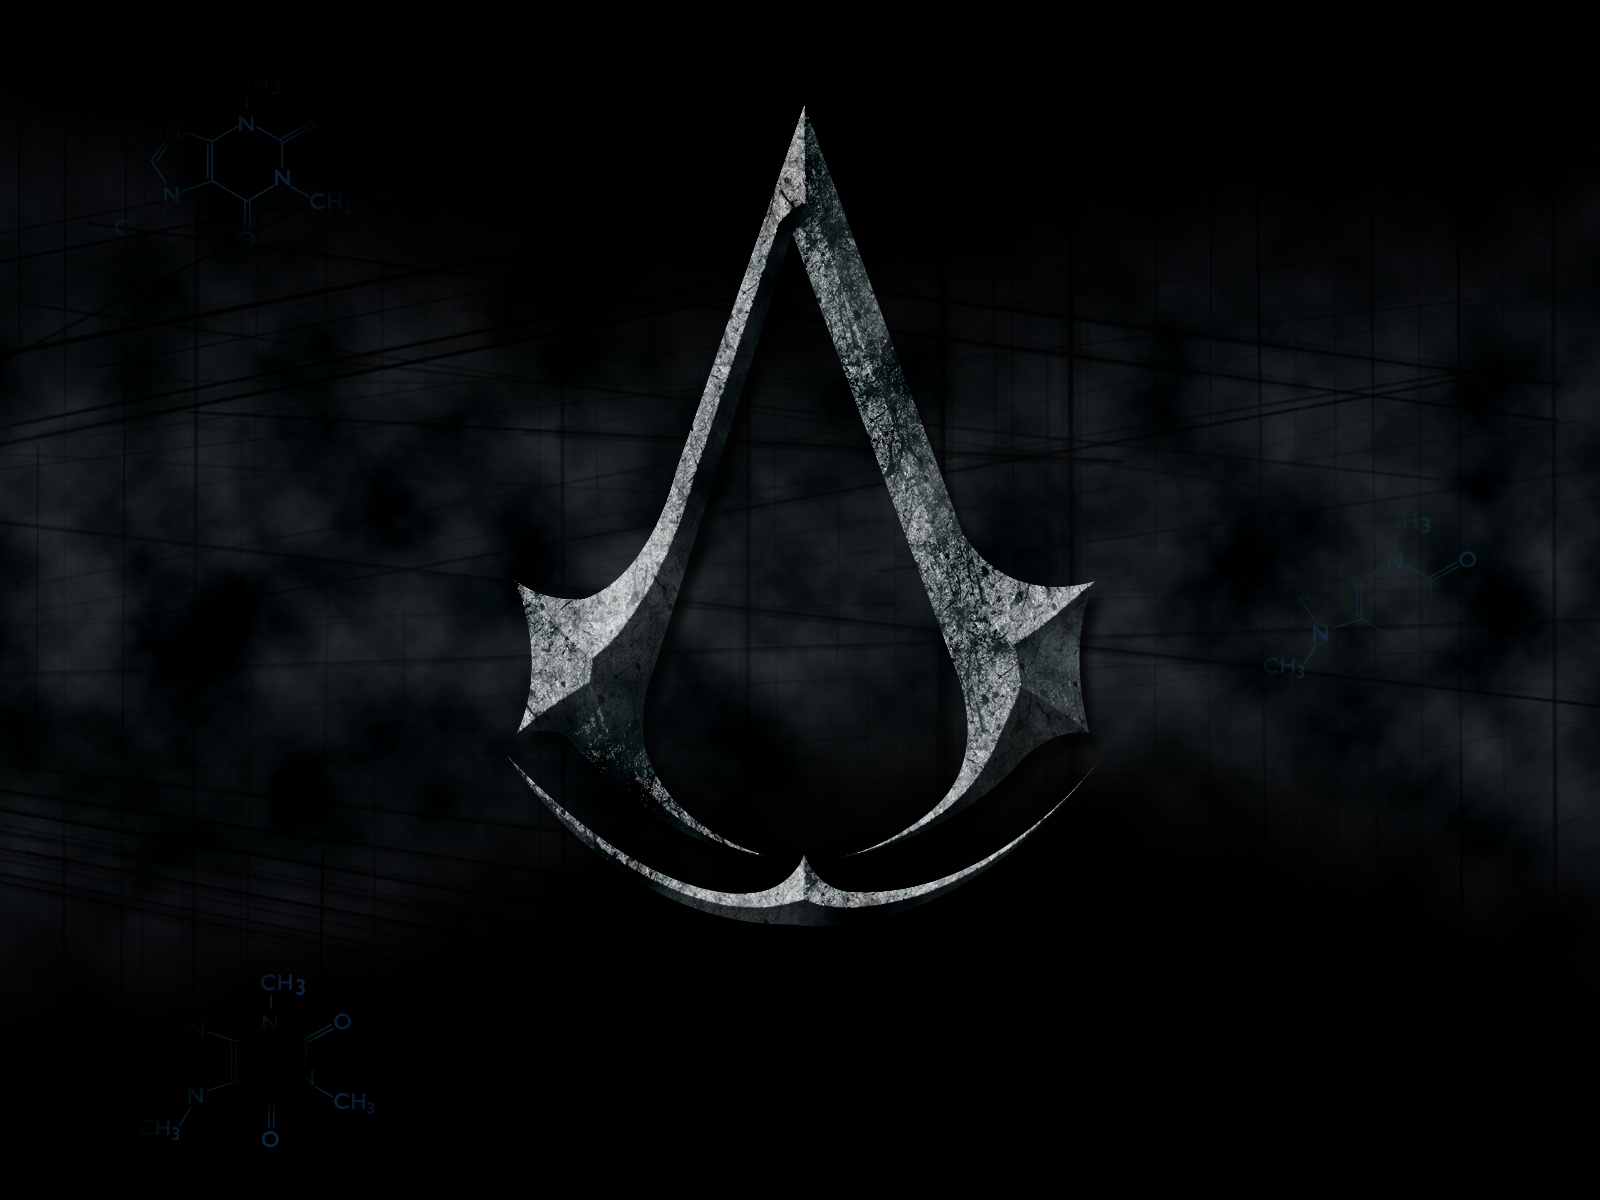 Assassins Creed Logo Wallpaper Download | My nerd | Pinterest